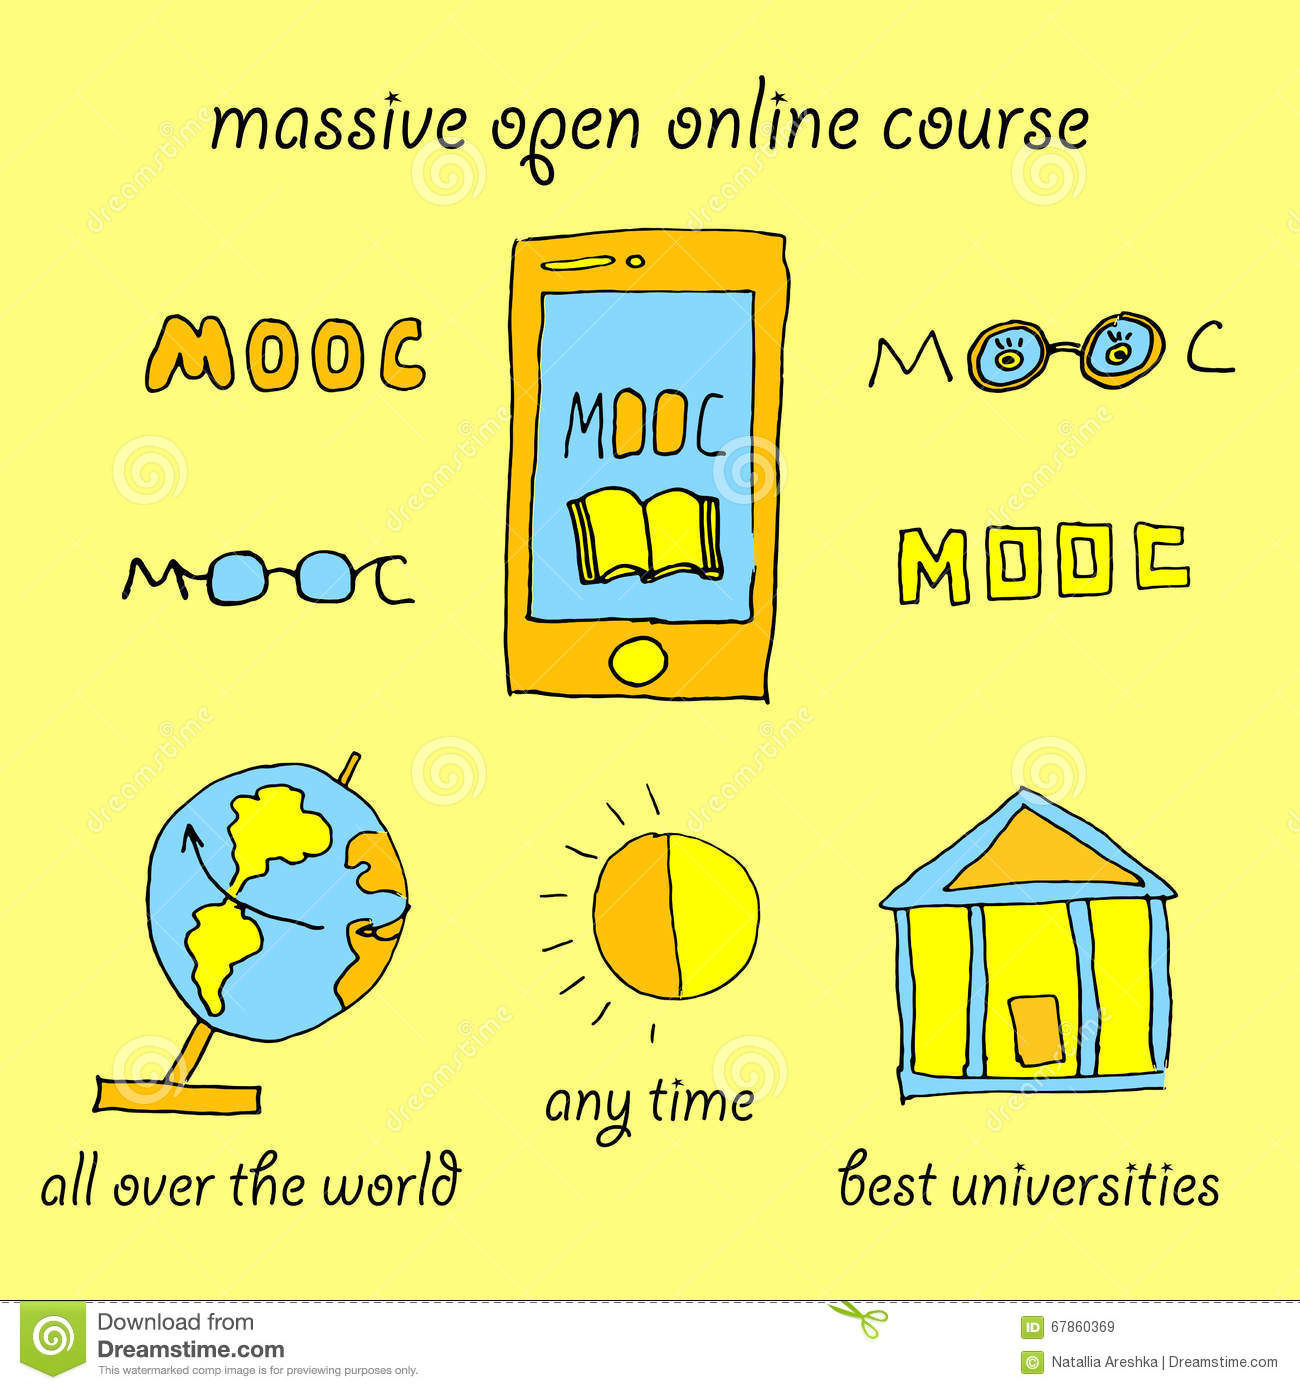 massive open online courses Learn online and earn valuable credentials from top universities like yale, michigan, stanford, and leading companies like google and ibm join coursera for free and transform your career with degrees, certificates, specializations, & moocs in data science, computer science, business, and dozens of other topics.